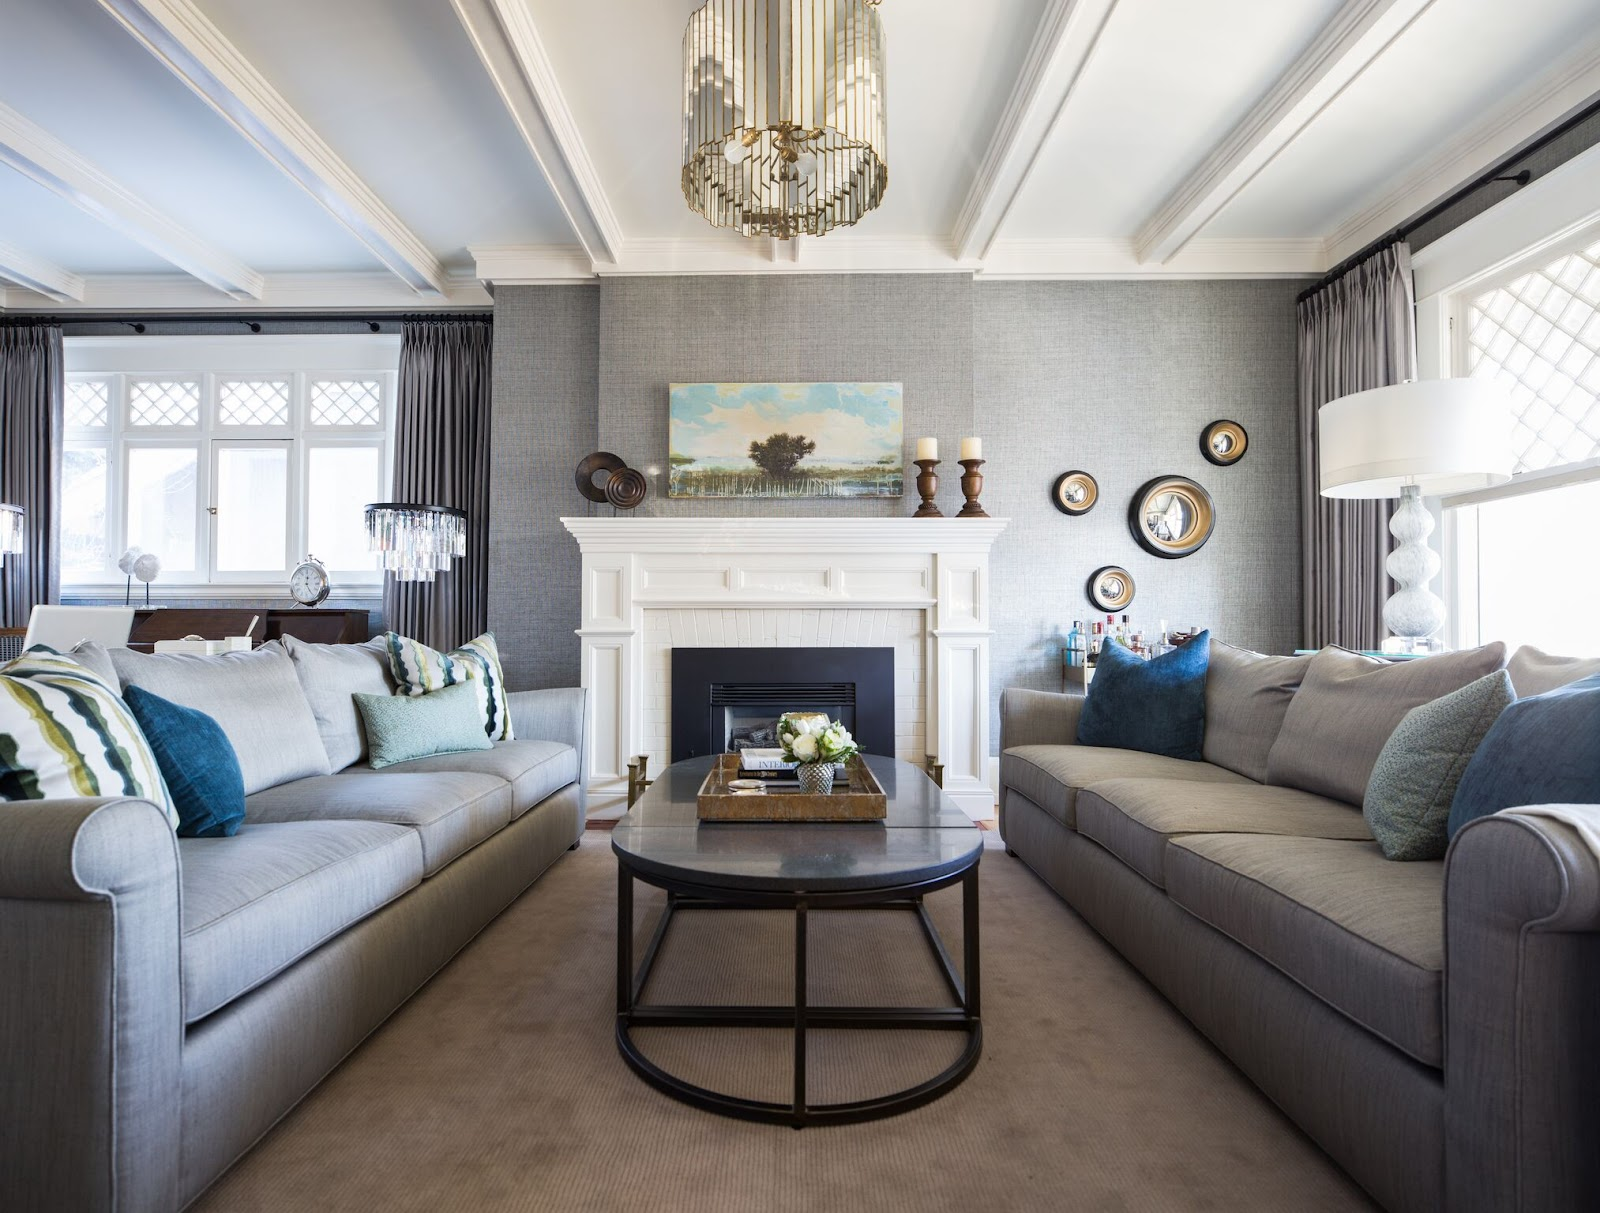 leanne bunnell interiors home renovation mirror chandelier white fireplace traditional ceiling calgary